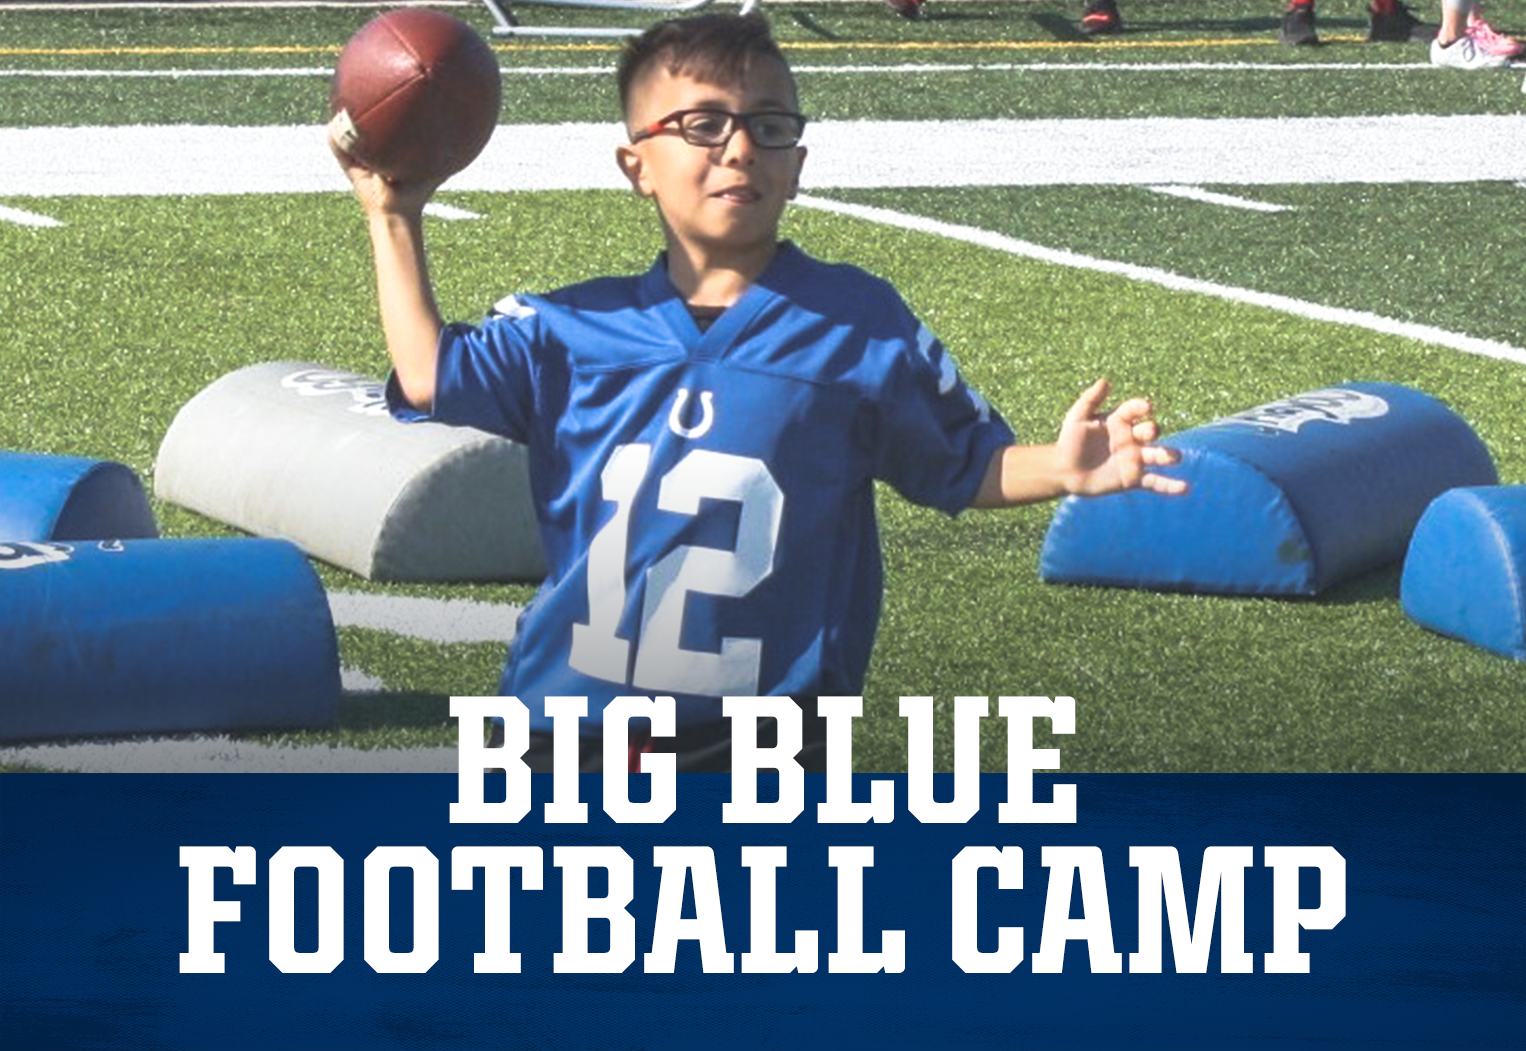 Indianapolis Colts Big Blue Football Camp